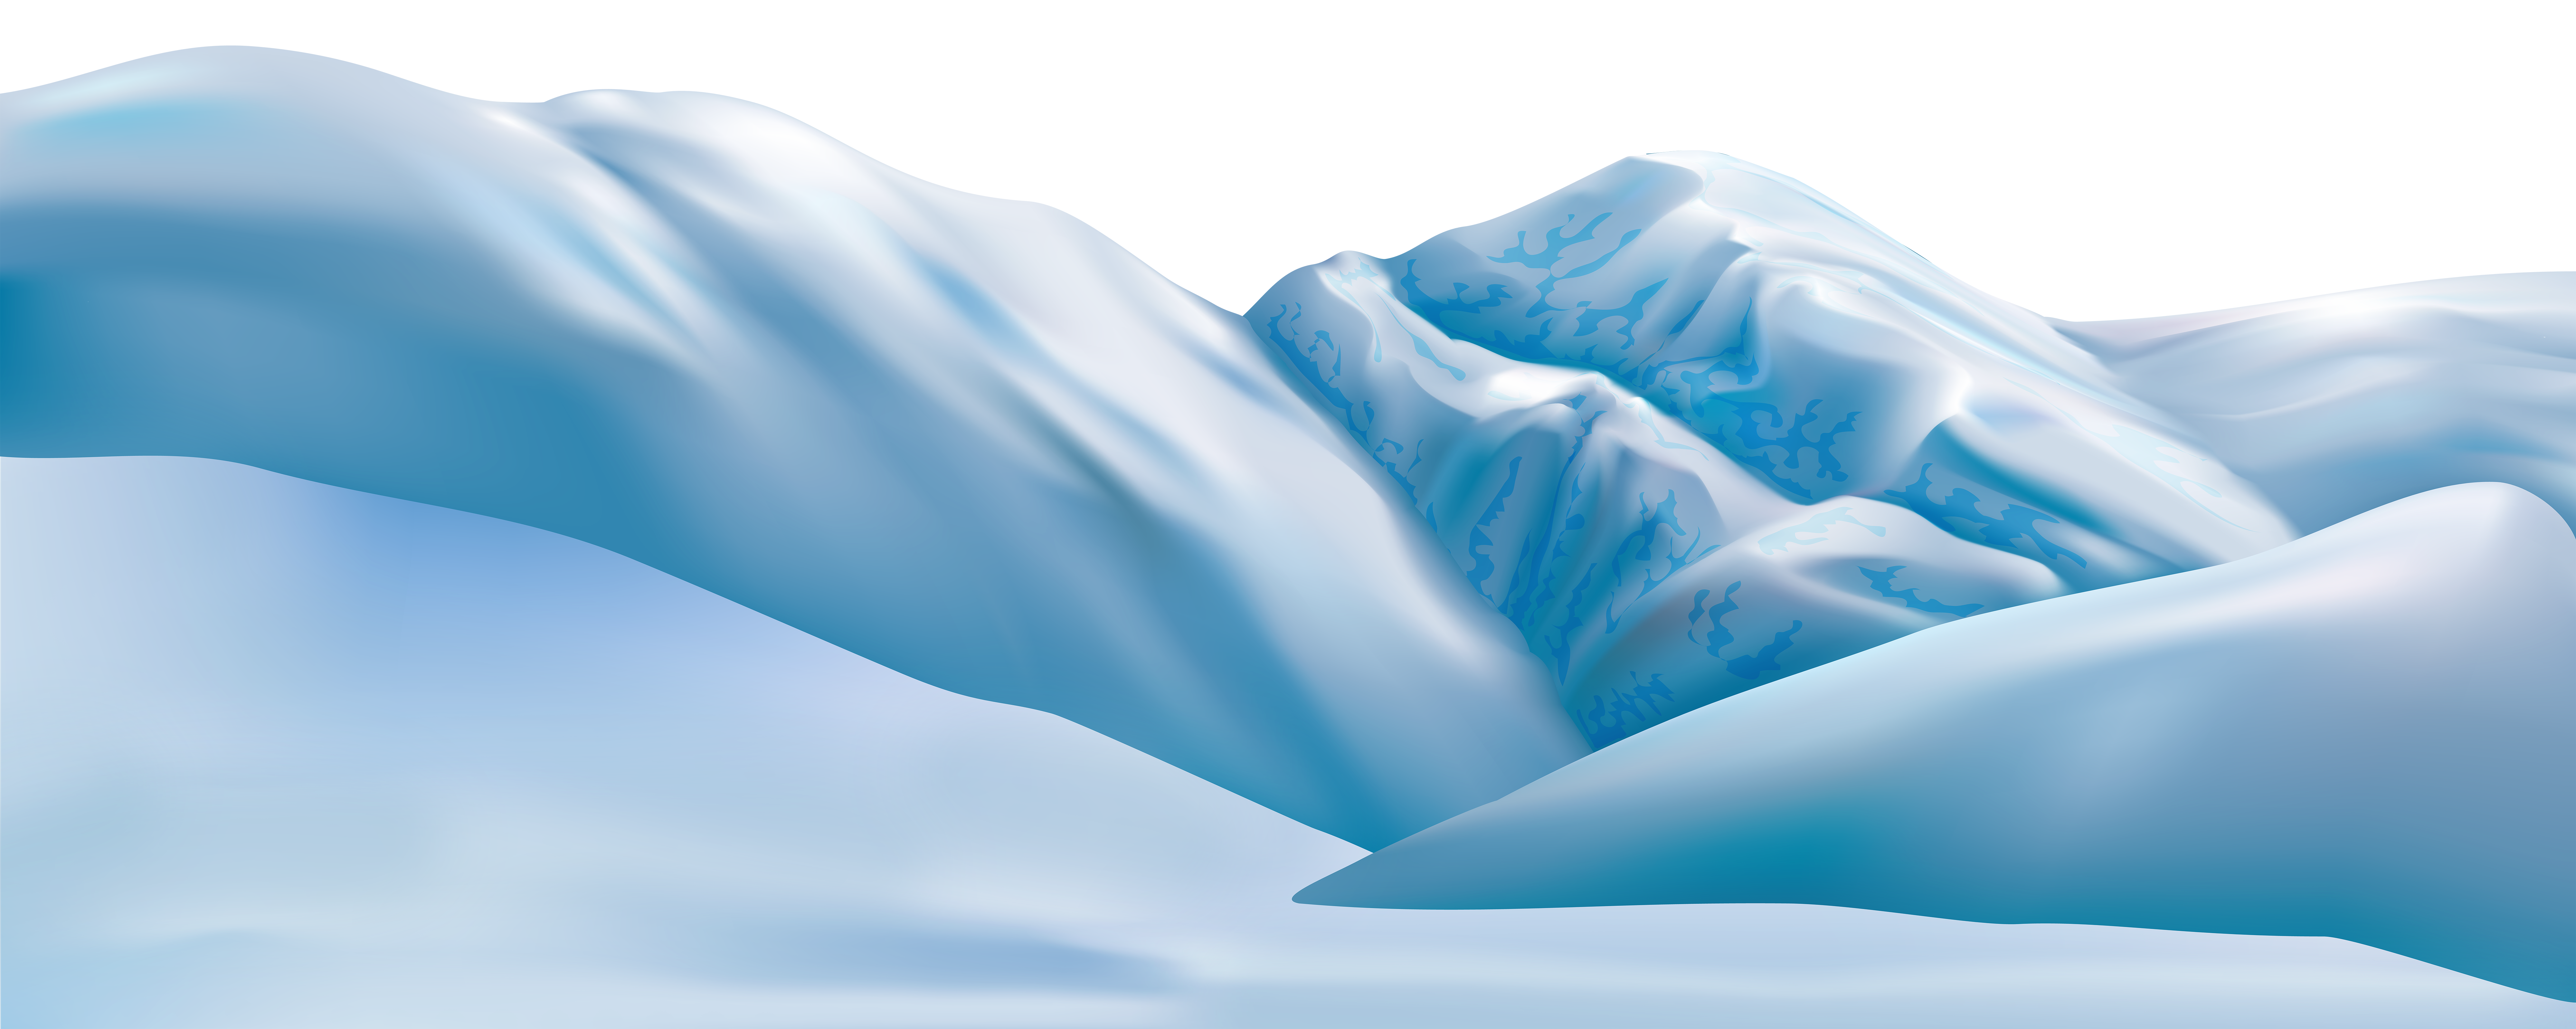 Mountain clipart view. Snowy transparent png image